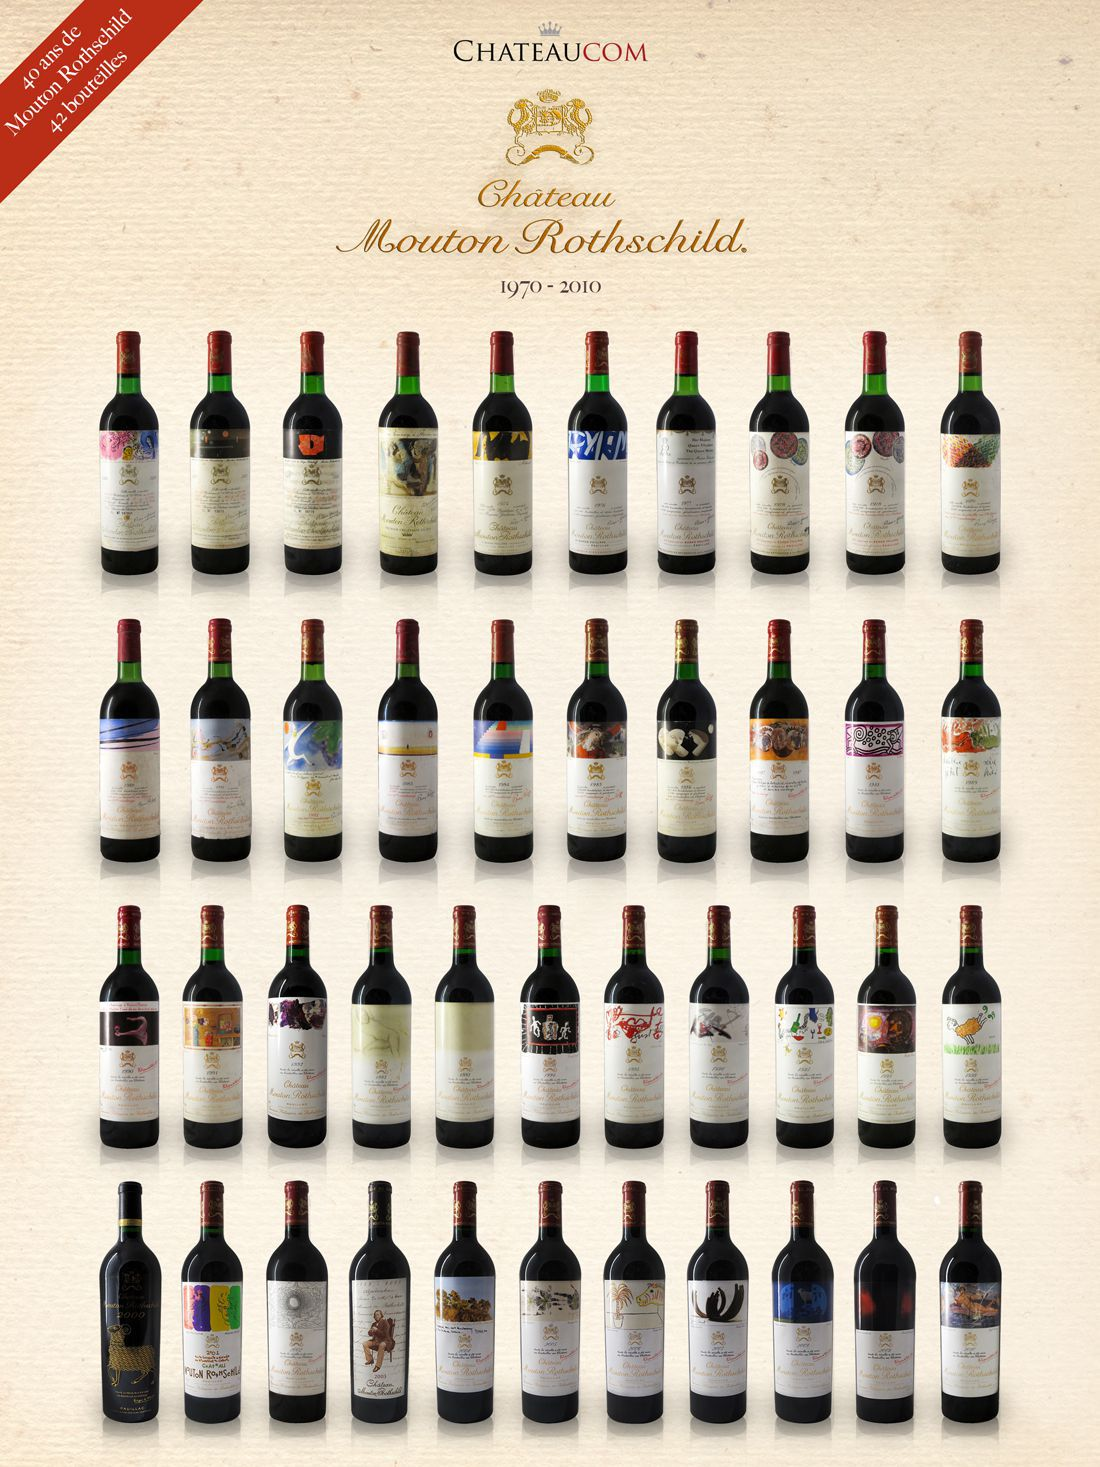 Collection Château Mouton Rothschild 1970-2010 - 40 years of Mouton Rothschild